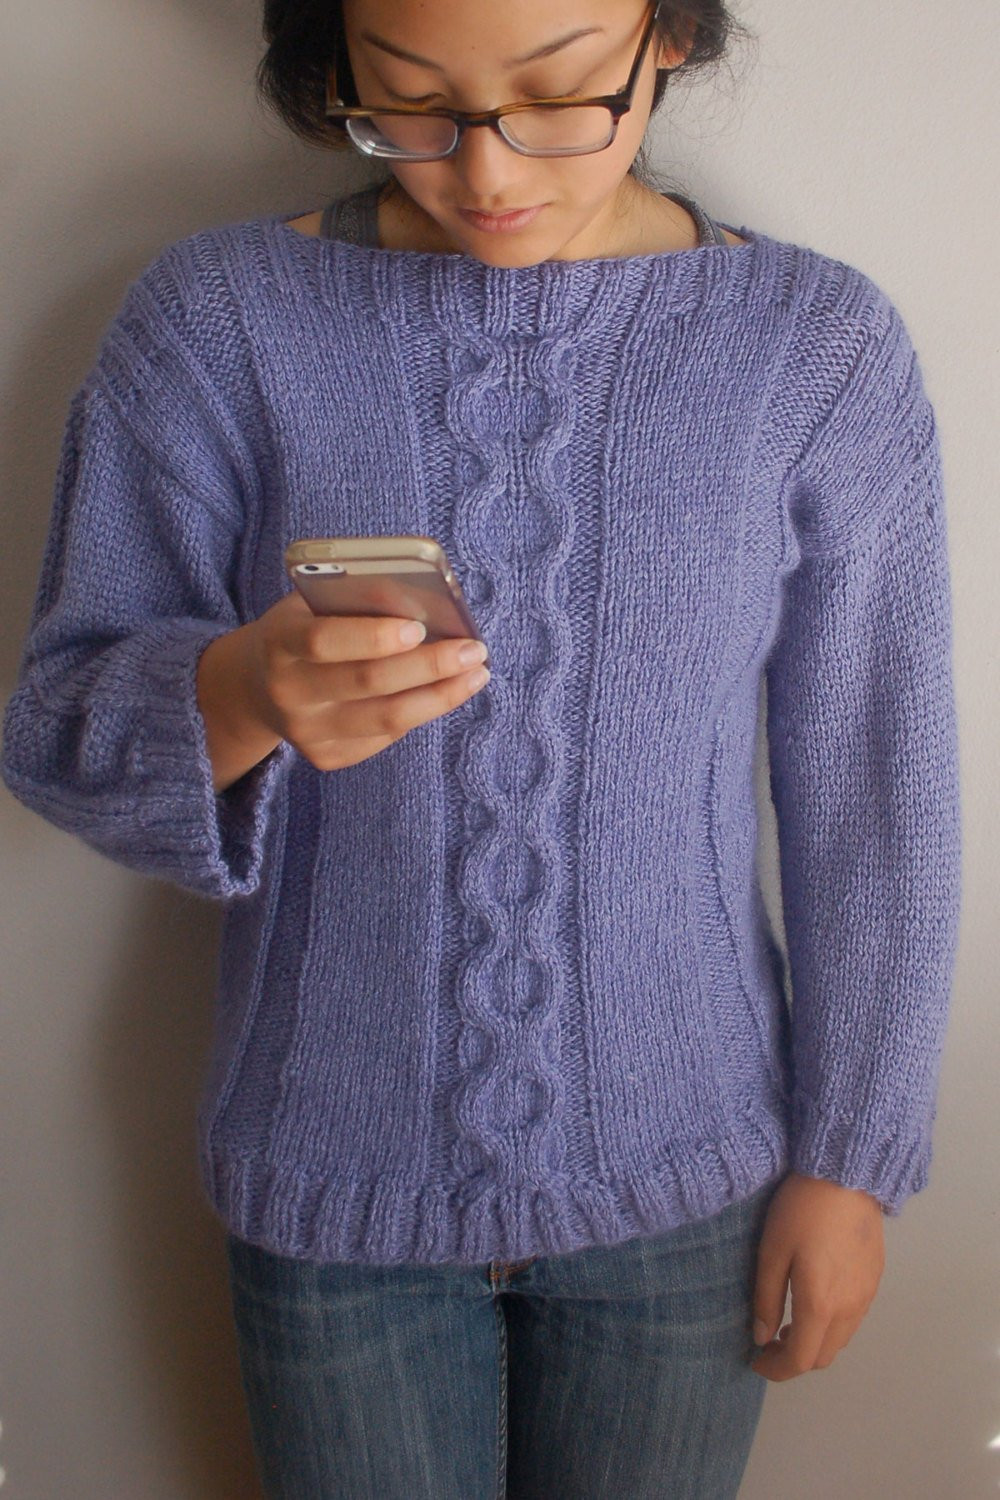 Sweater Knitting Patterns Lovely Cable Sweater Knitting Pattern Easy to Knit Pullover Of Amazing 42 Models Sweater Knitting Patterns